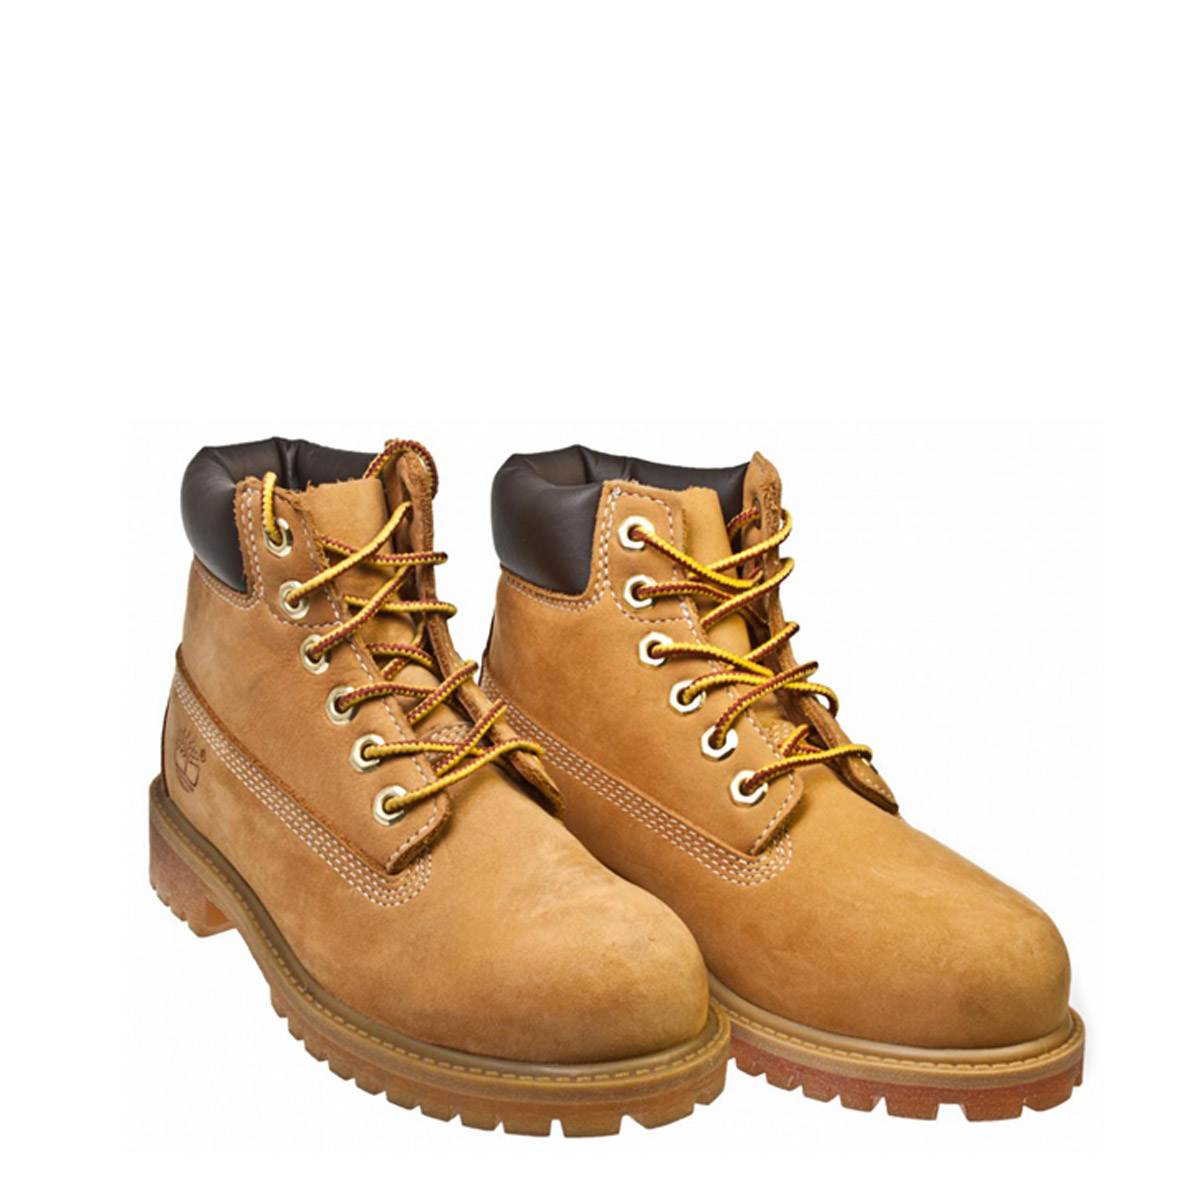 Timberland 6 Quot Girls Boys Kids Wheat Brown Leather Ankle